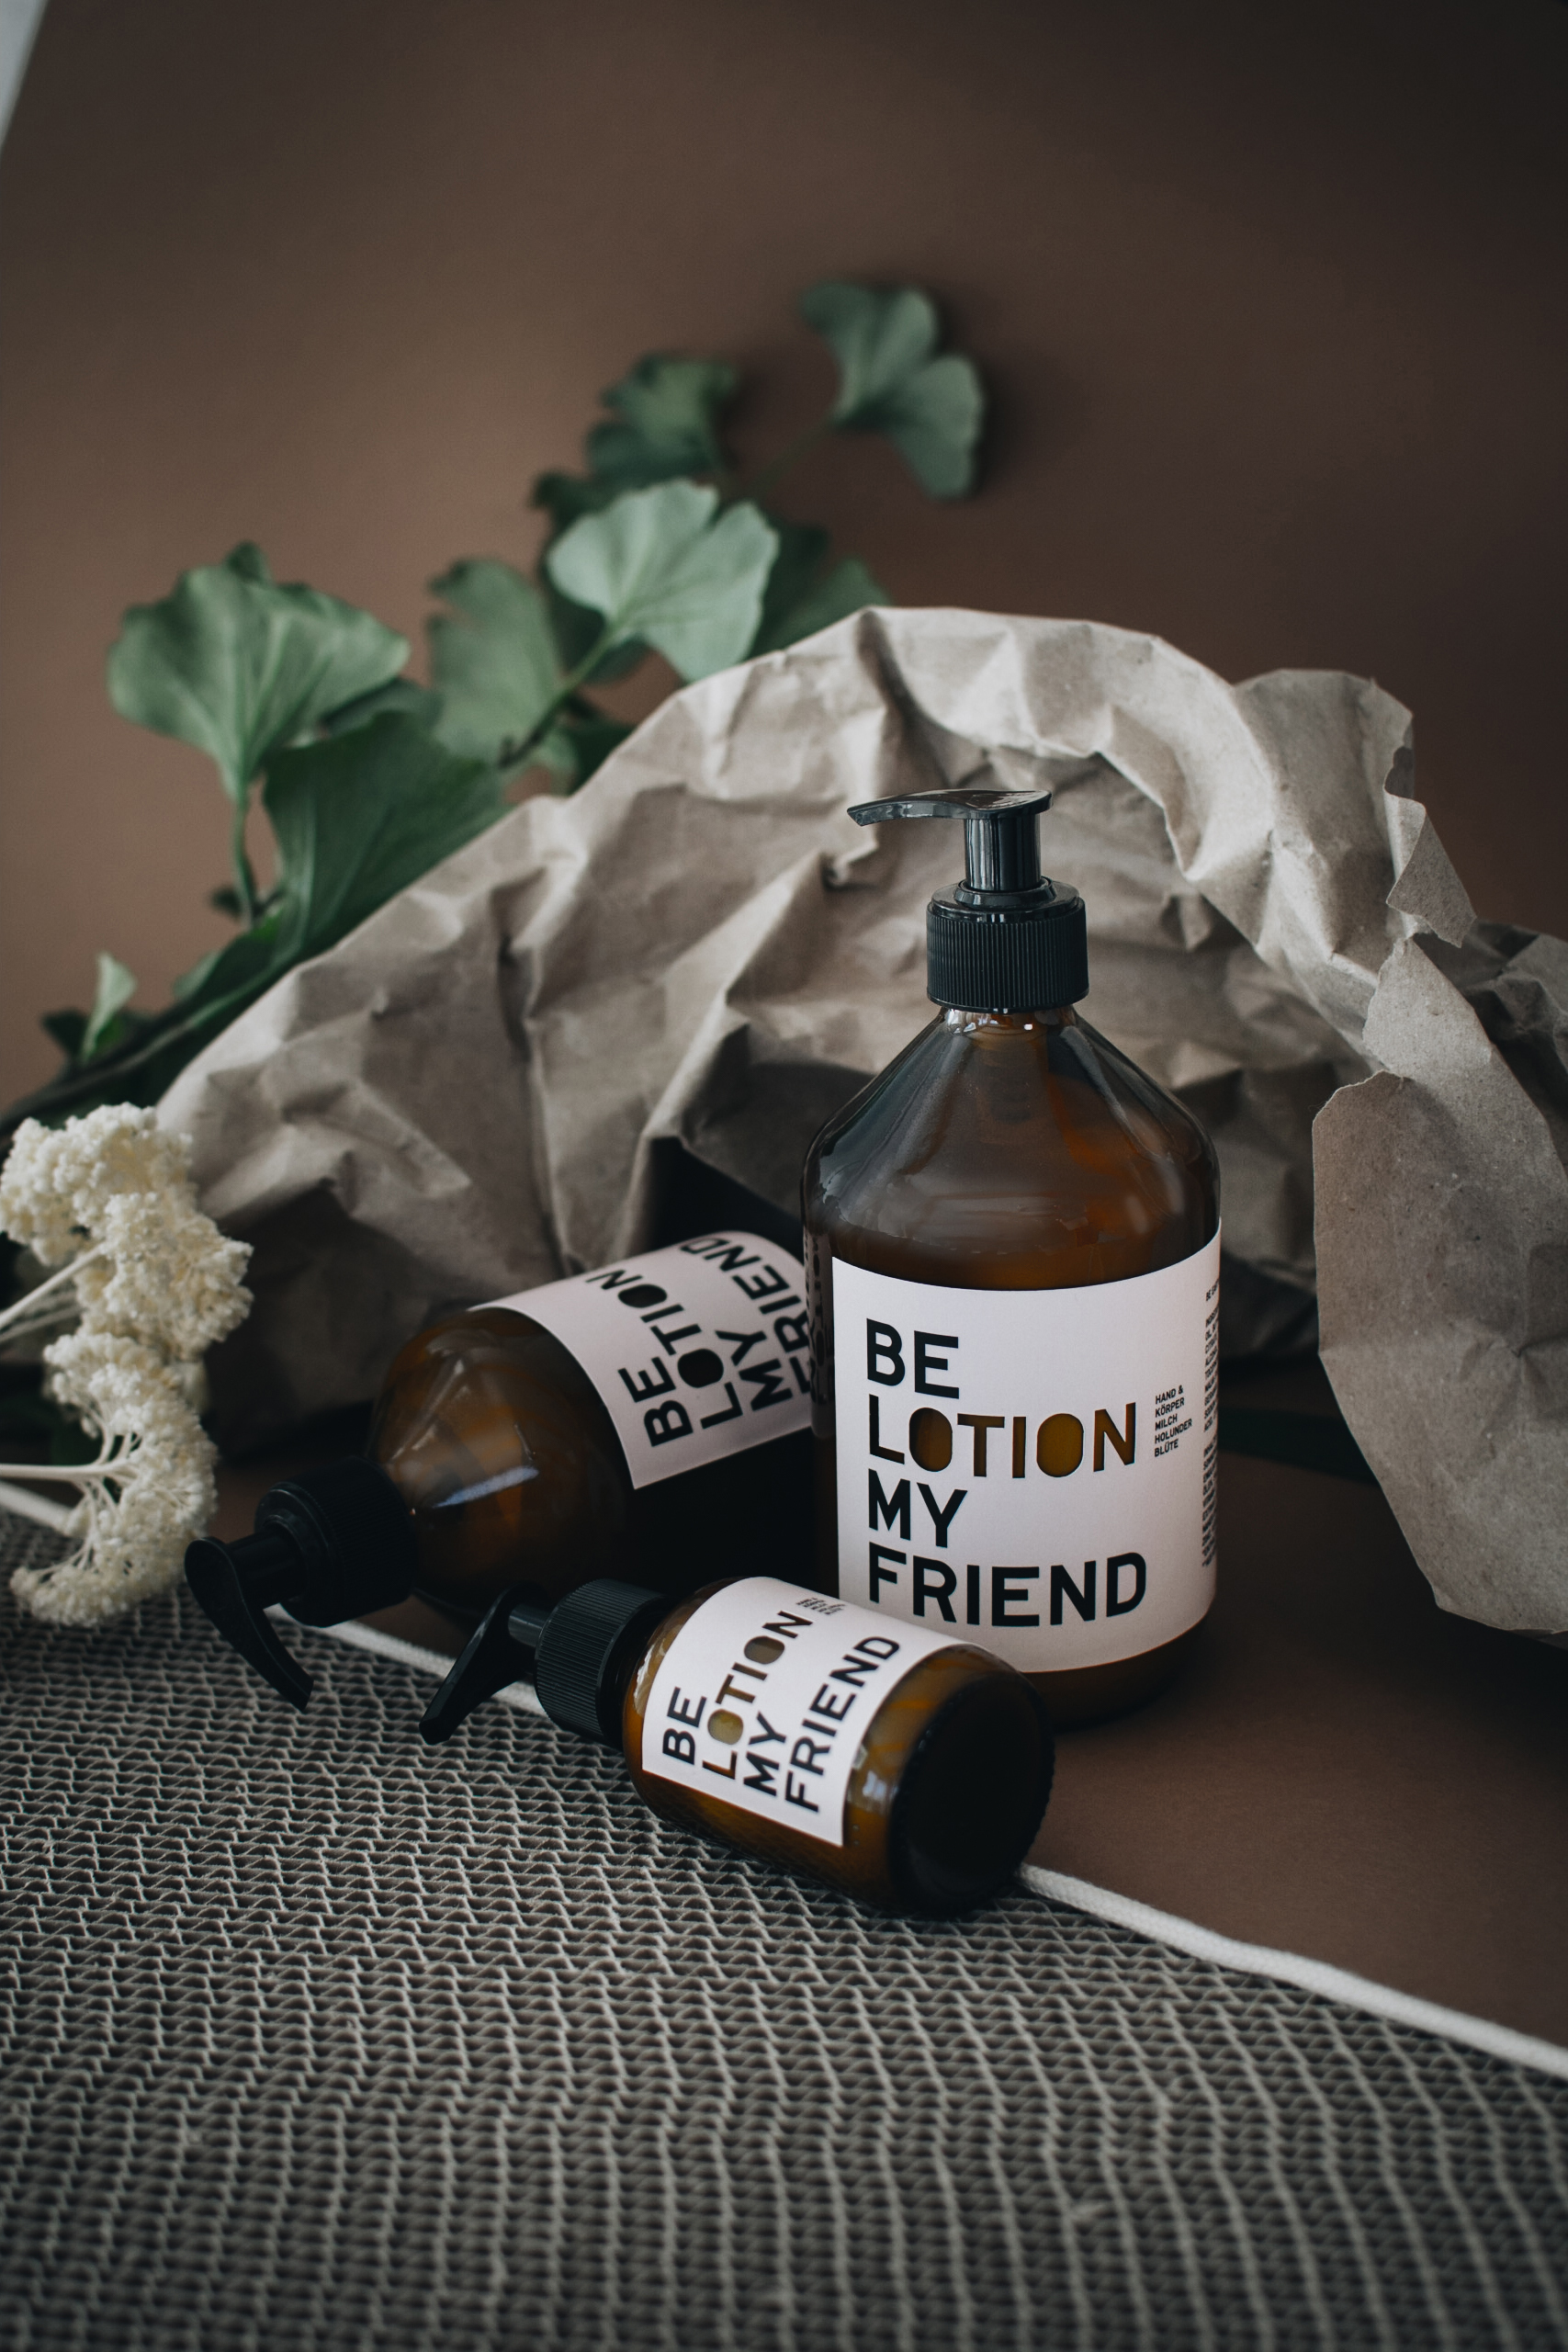 BE LOTION